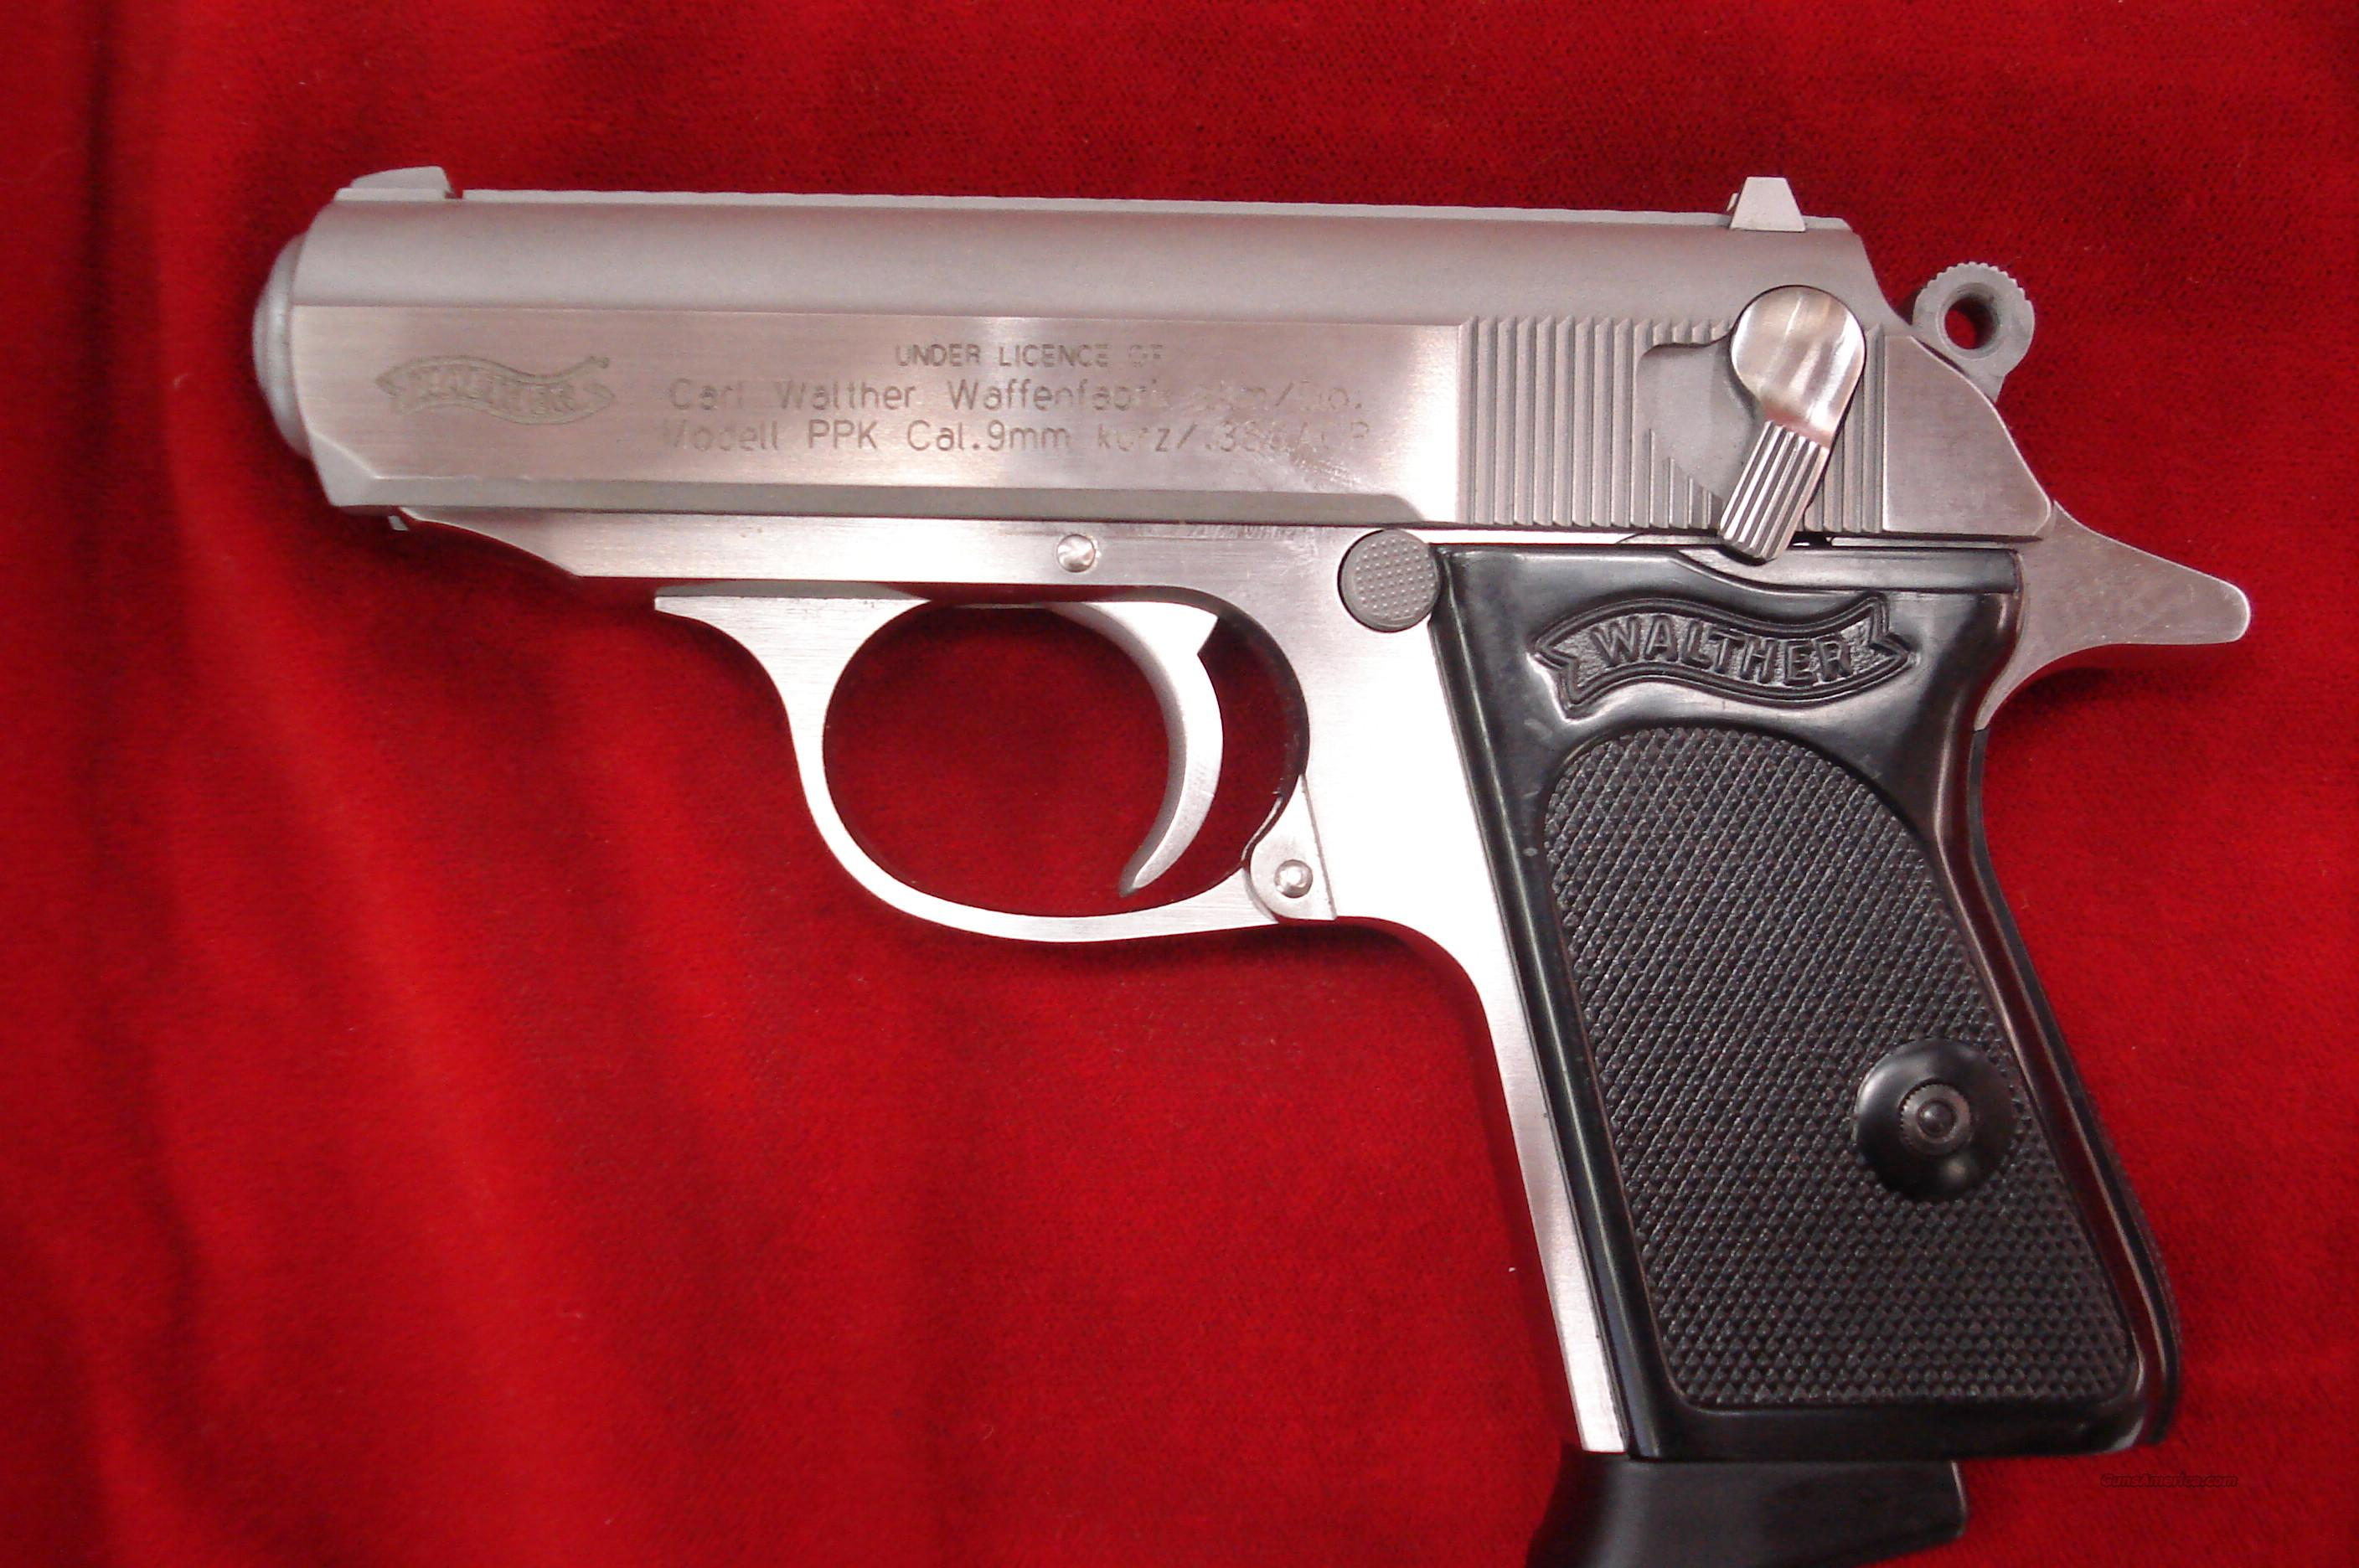 WALTHER PPK STAINLESS 380 CAL. NEW   Guns > Pistols > Walther Pistols > Post WWII > PPK Series